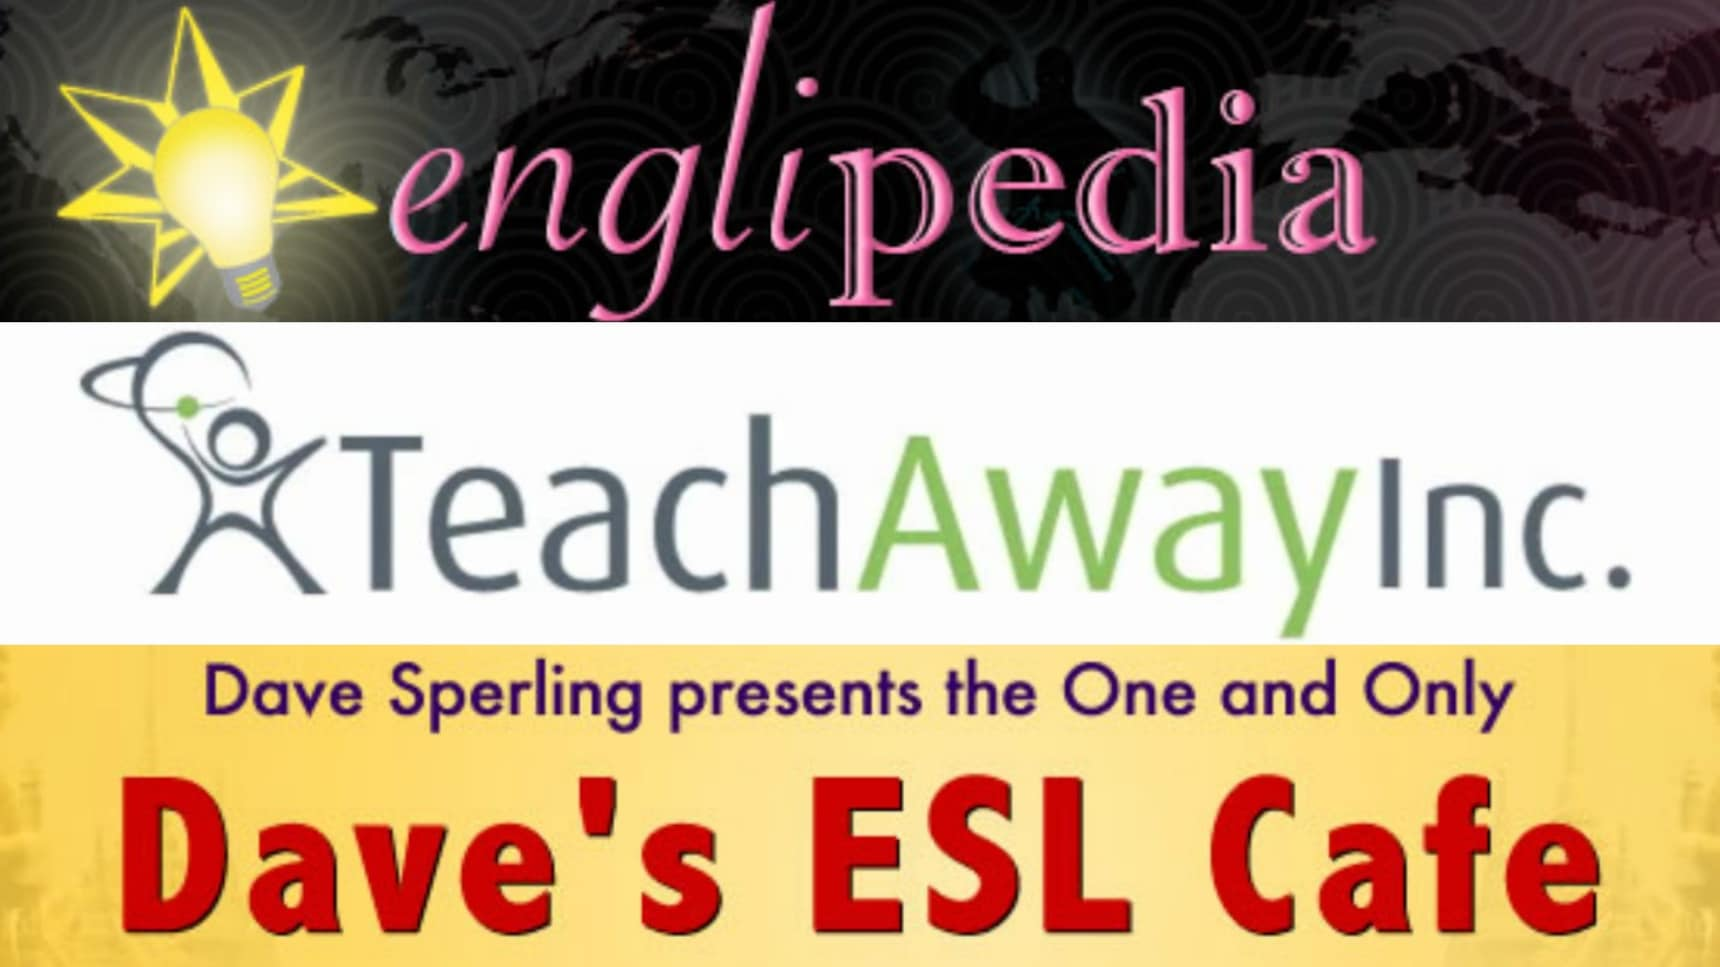 7 Key Resource Sites for English Teachers